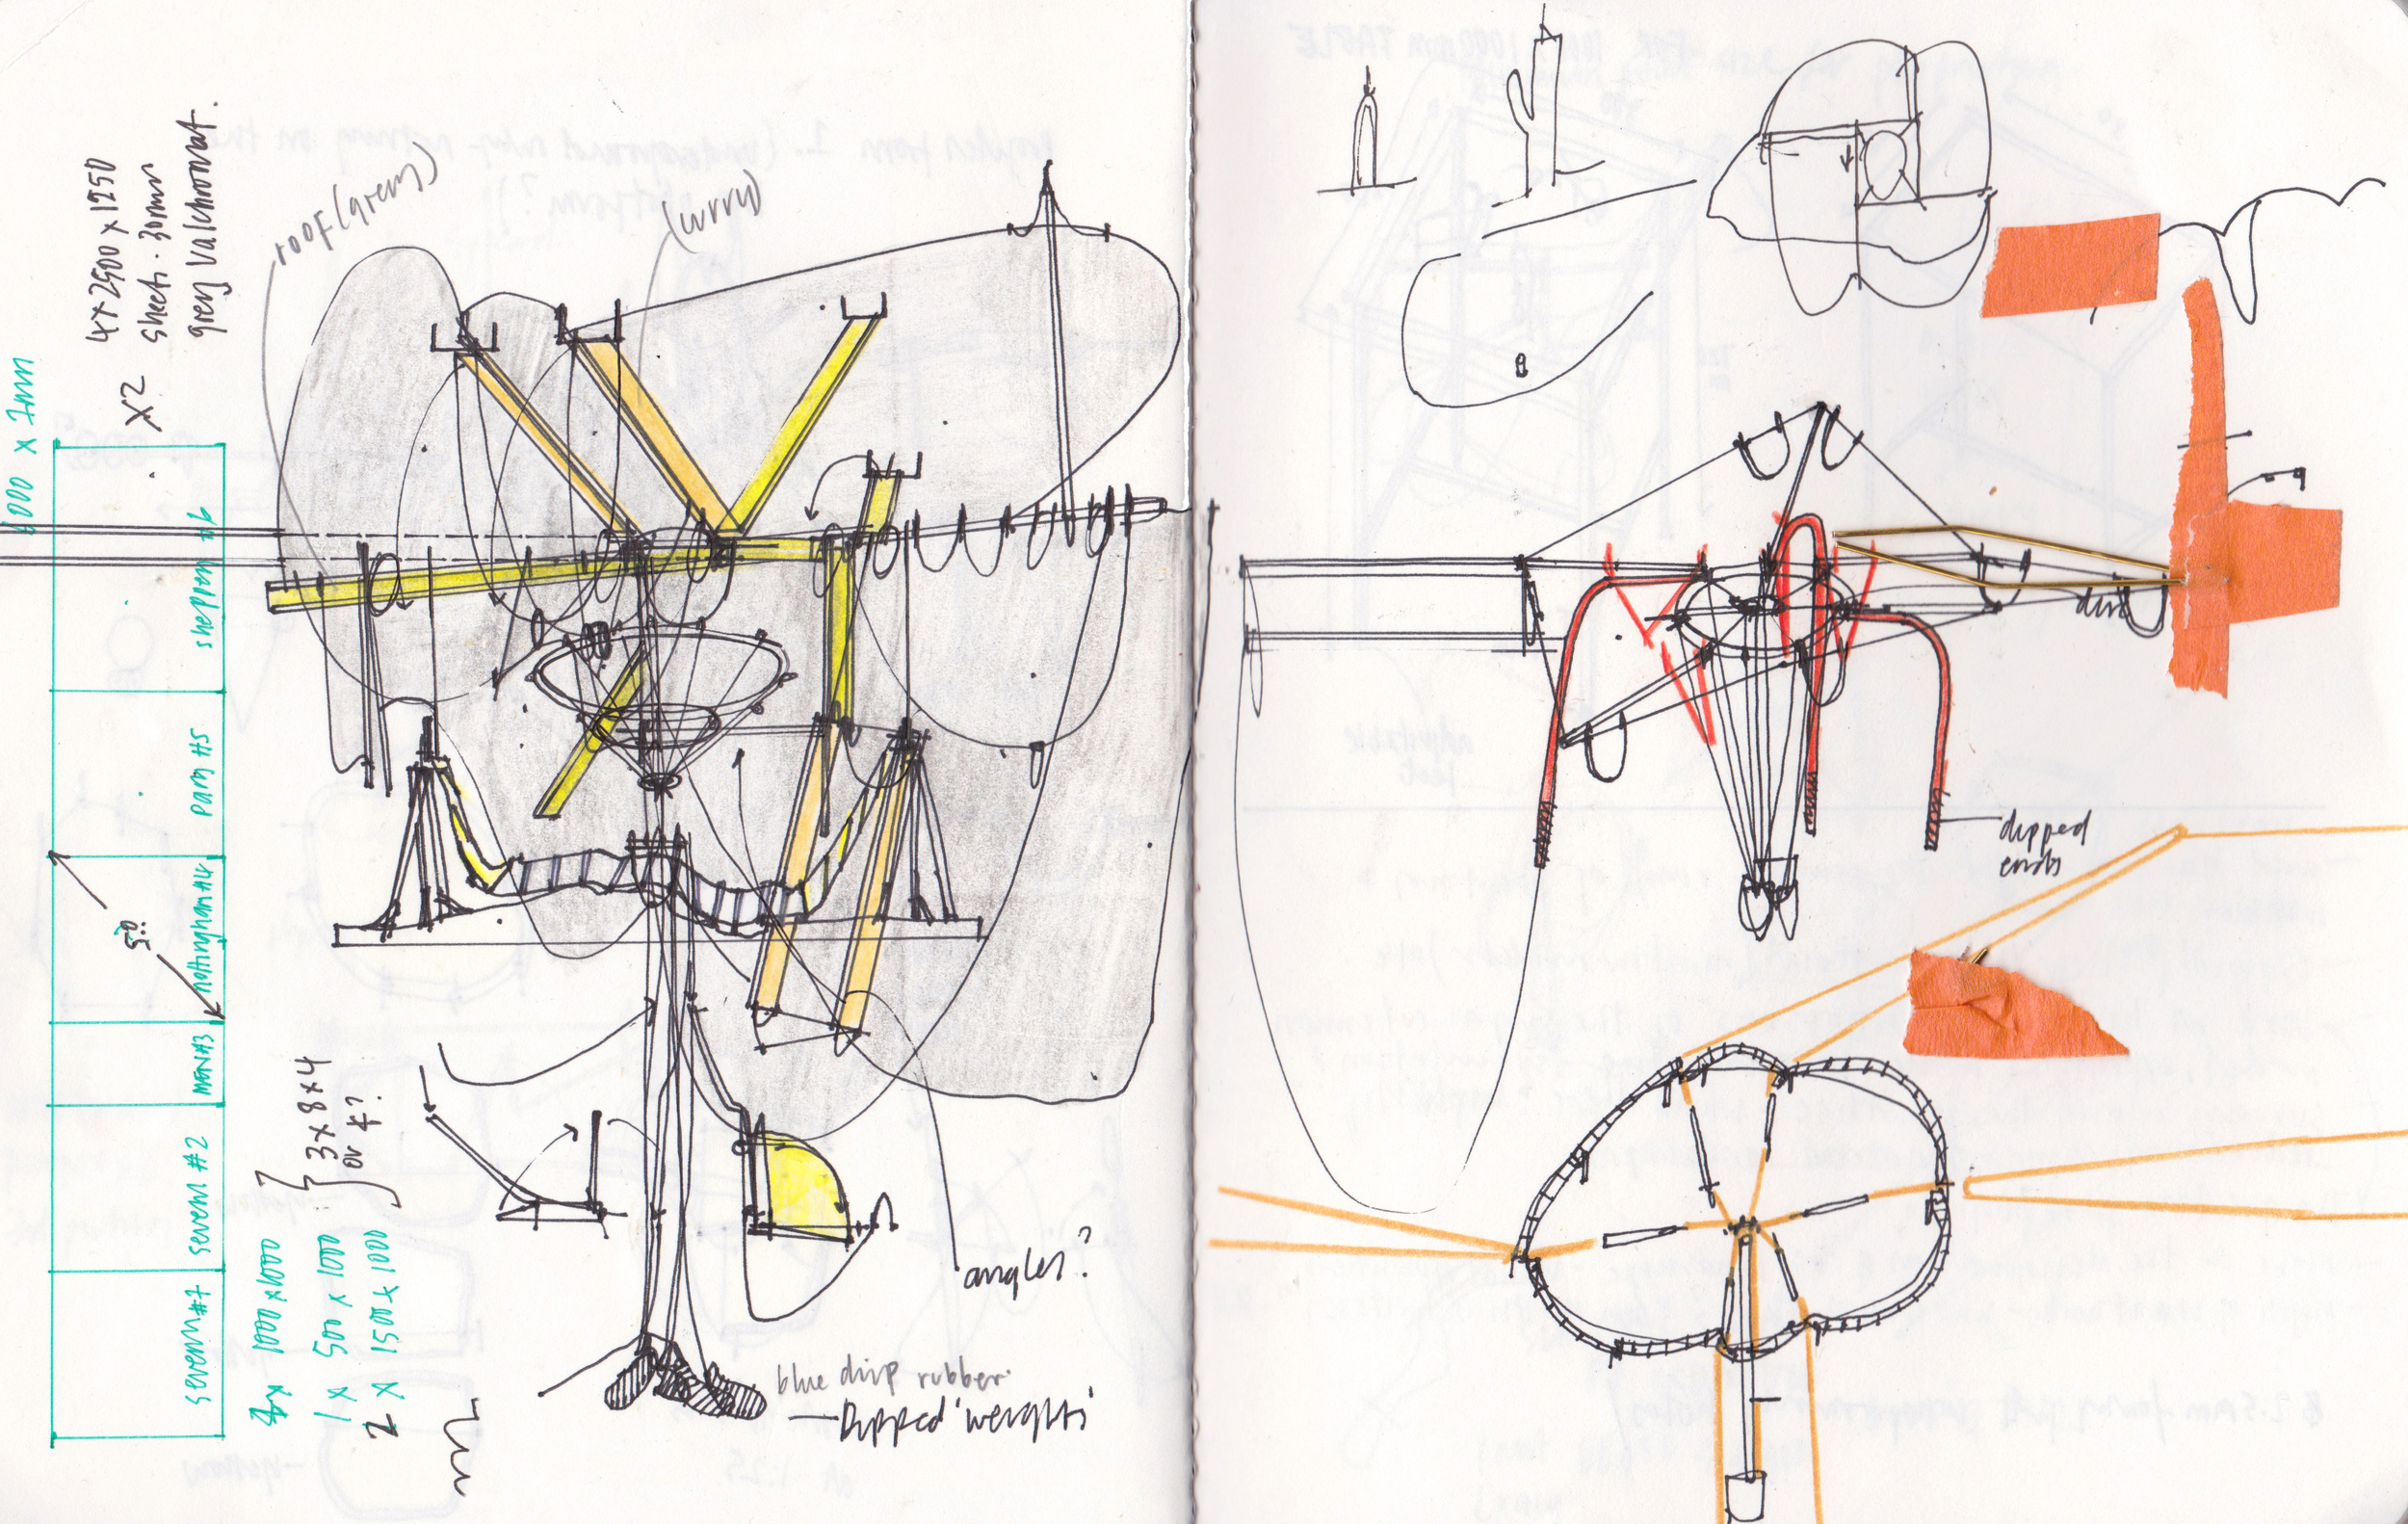 Sketchbook_Pantograph_2_edit.jpg